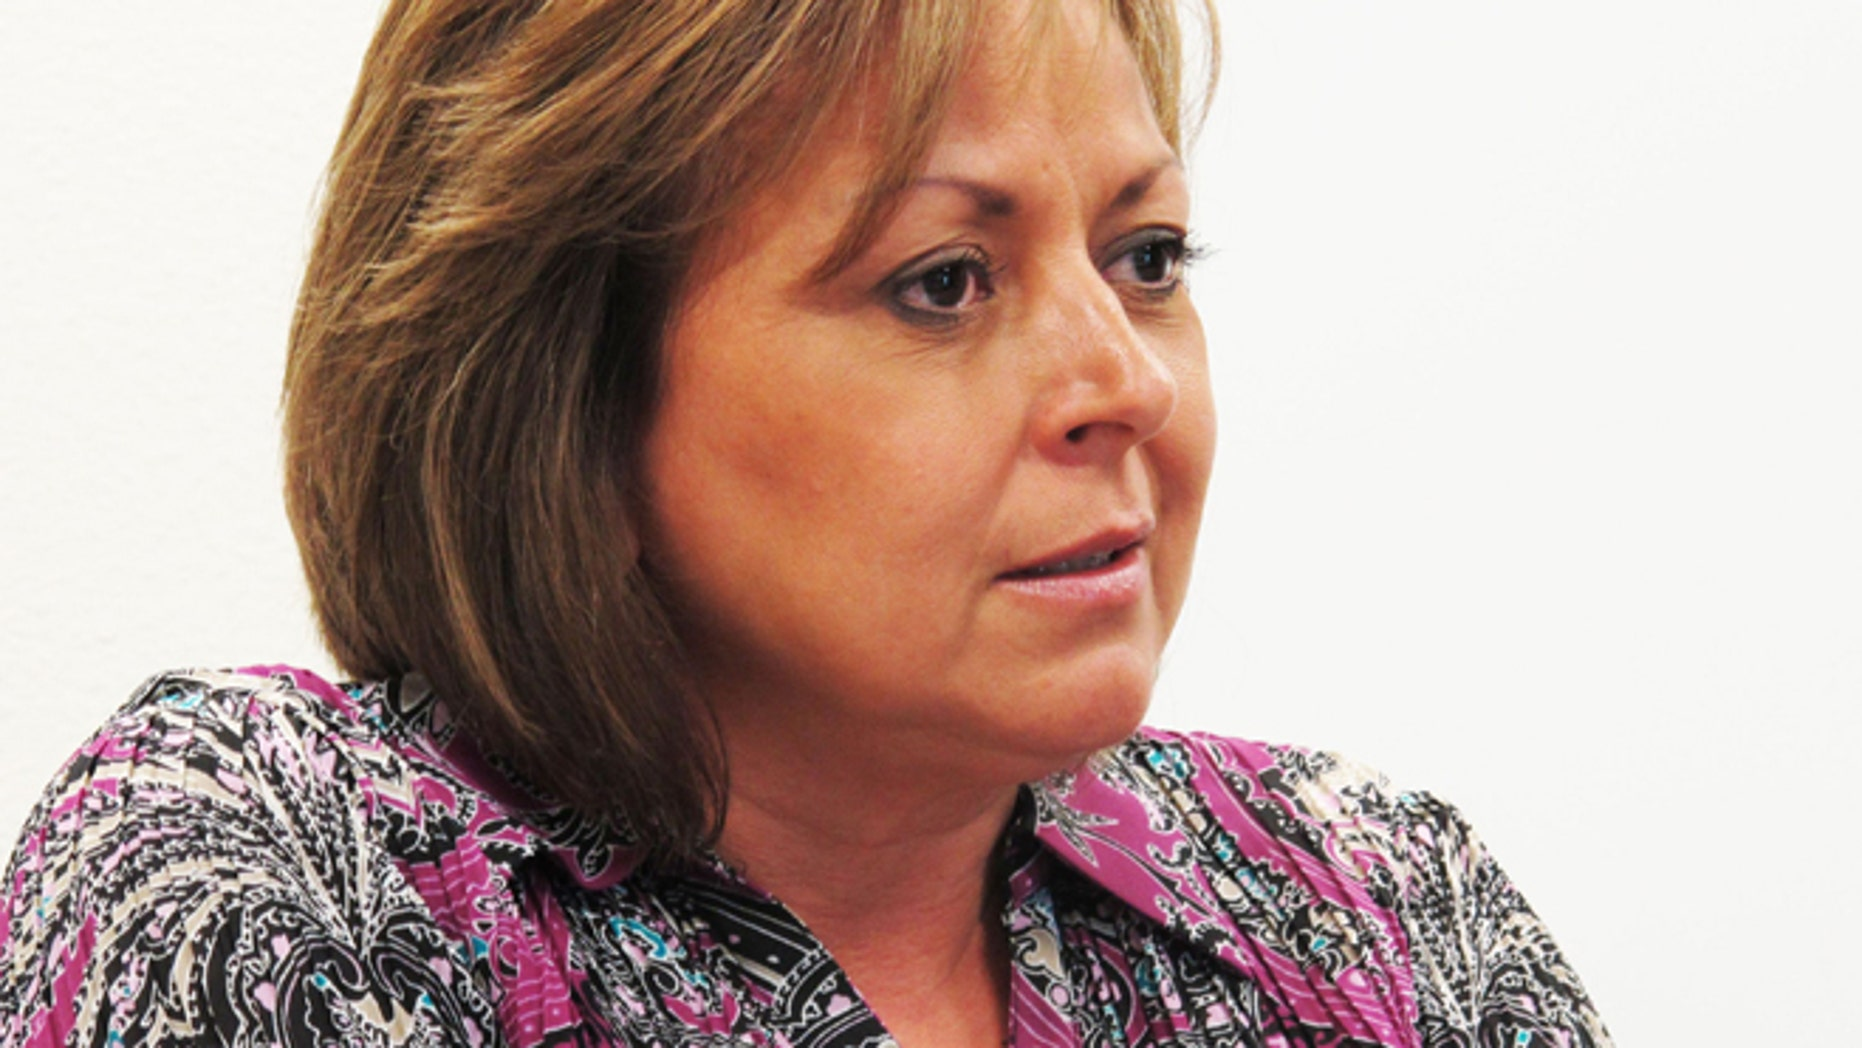 New Mexico Gov. Susana Martinez talks about being tapped to speak at the Republican National Convention following a news conference Monday, Aug. 6, 2012, on her action to eliminate registration fees for companies doing business in New Mexico. Martinez says the announcement puts to rest months-long rumors she was a potential running mate for Mitt Romney. (AP Photo/Jeri Clausing)